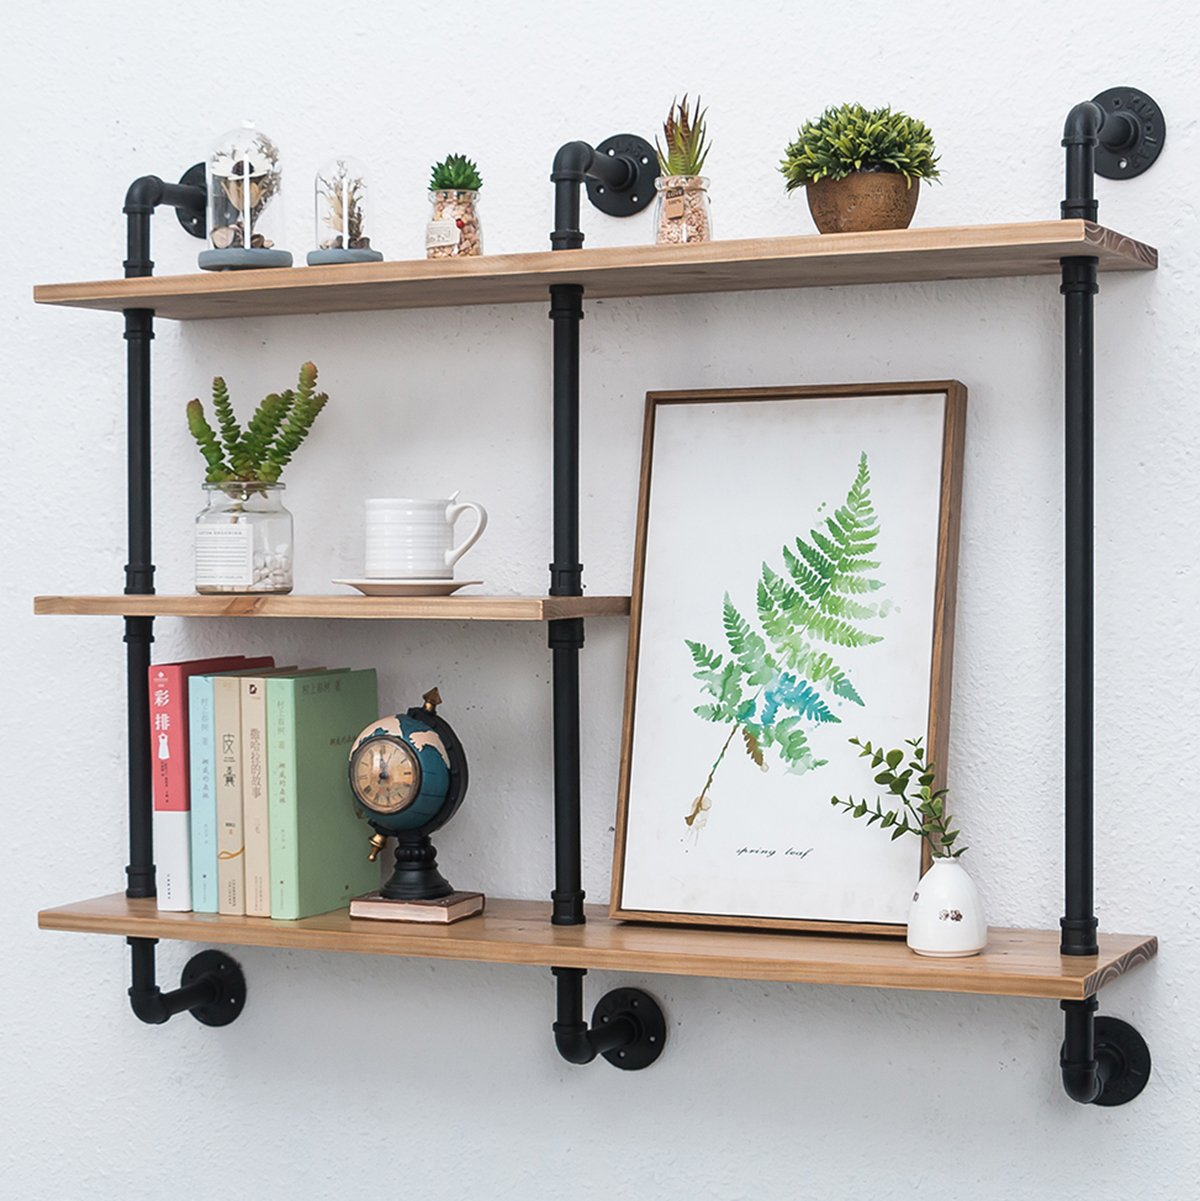 Industrial Pipe Shelf with Wood 43.3in,Rustic Wall Mount Shelf 3-Tiers,Metal Hung Bracket Bookshelf,Diy Storage Shelving Floating Shelves - Living room